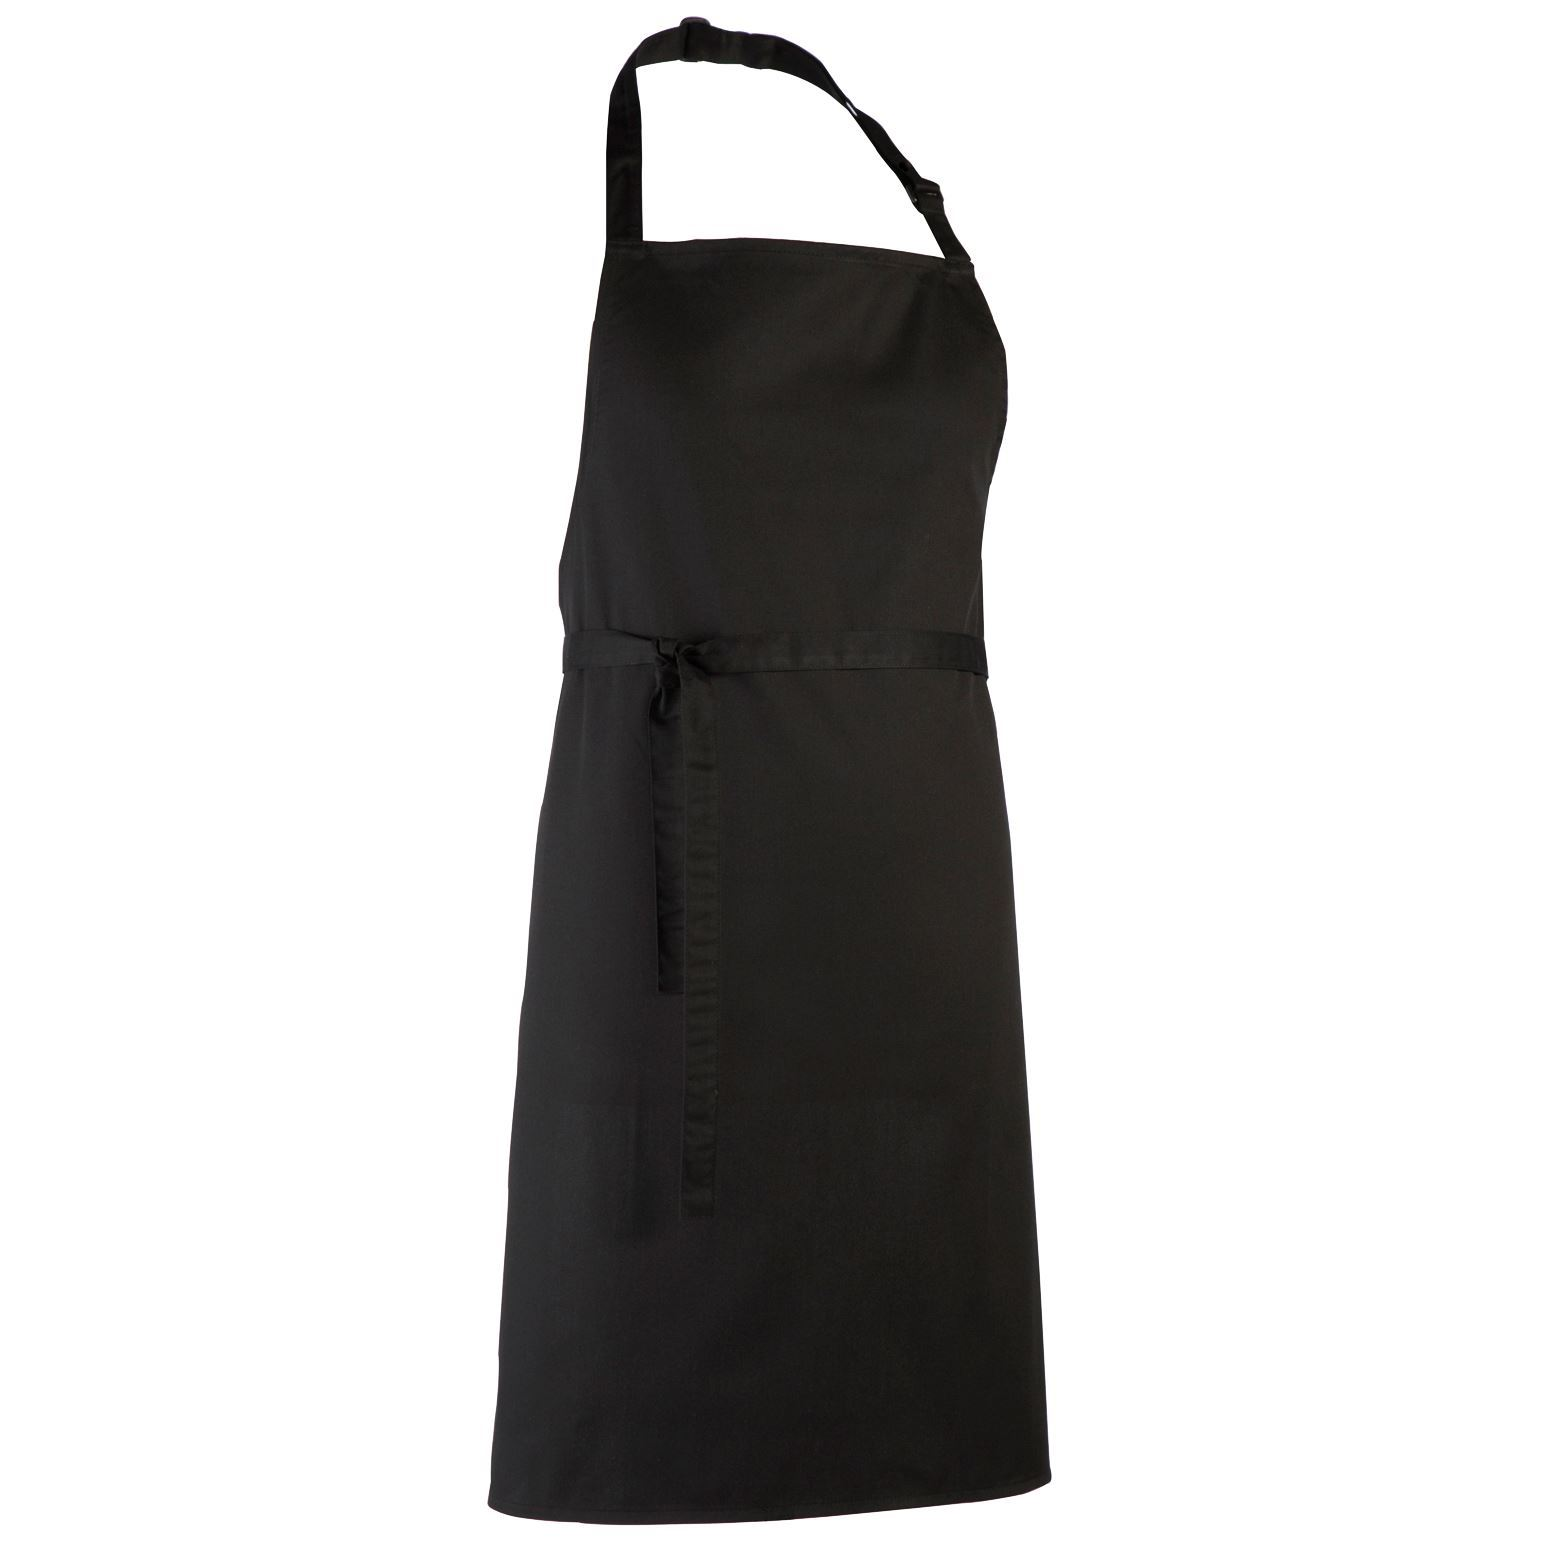 United Work Wear Long Bib Apron No Pocket Pr150